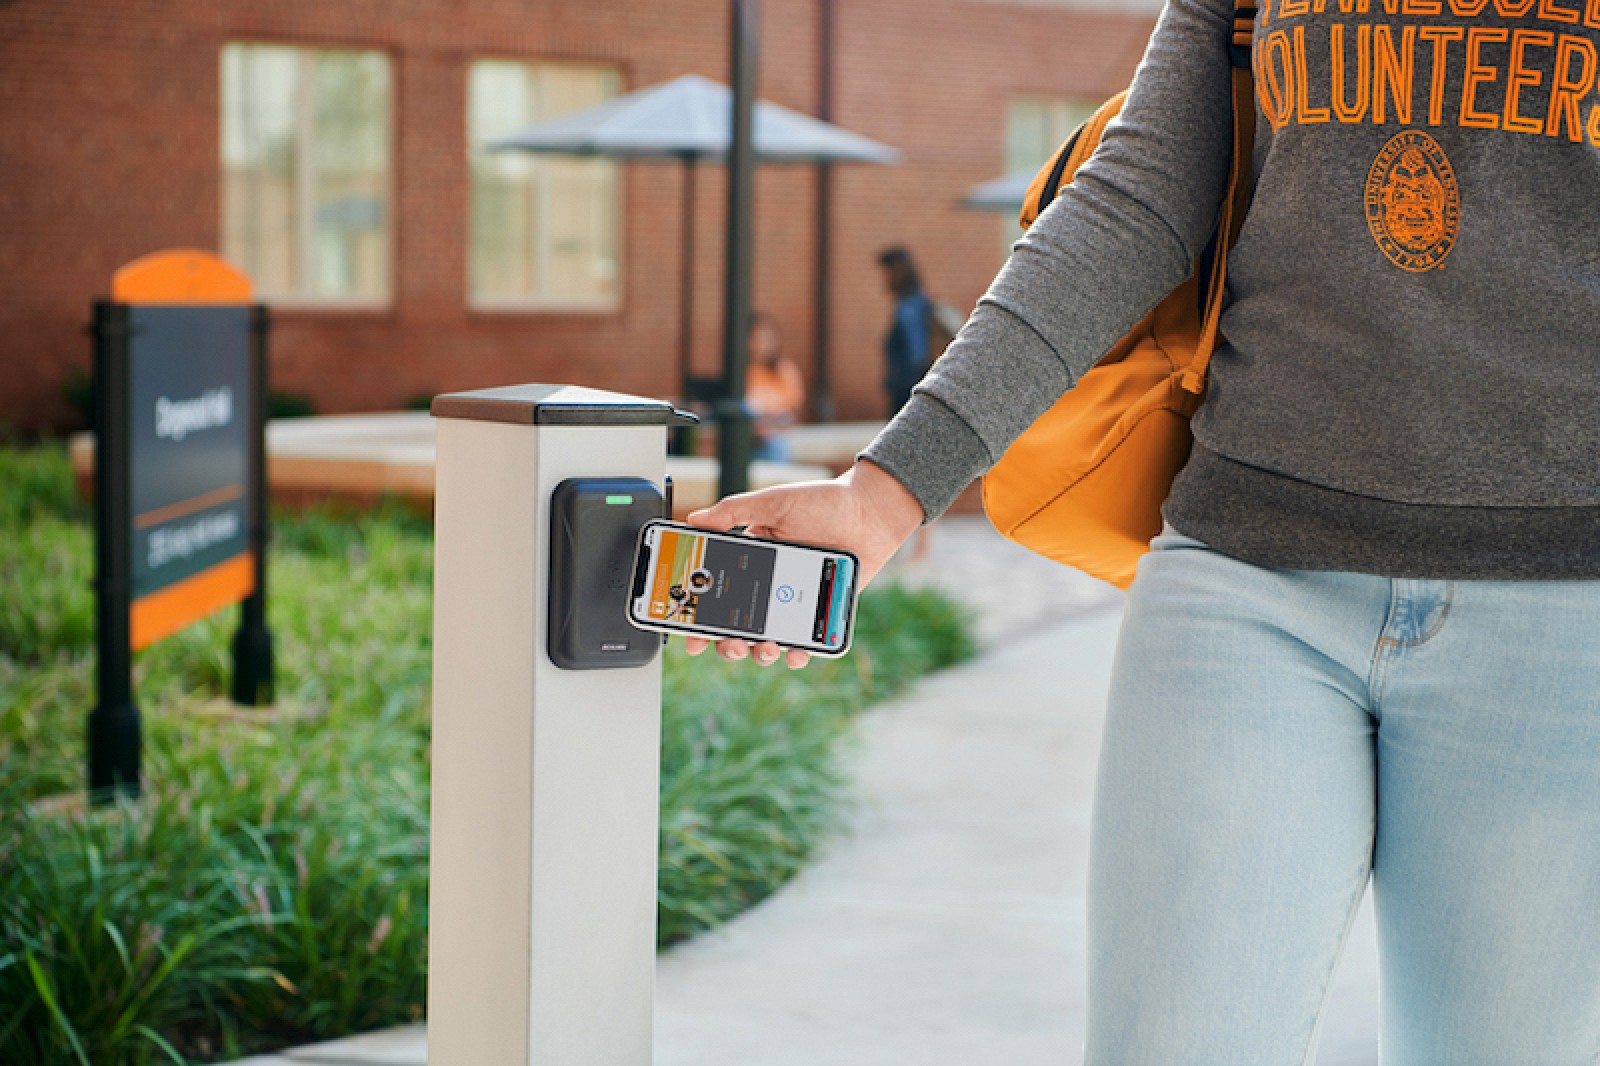 photo of Apple Expanding Contactless Student ID Cards to 12 More Universities in Coming School Year image